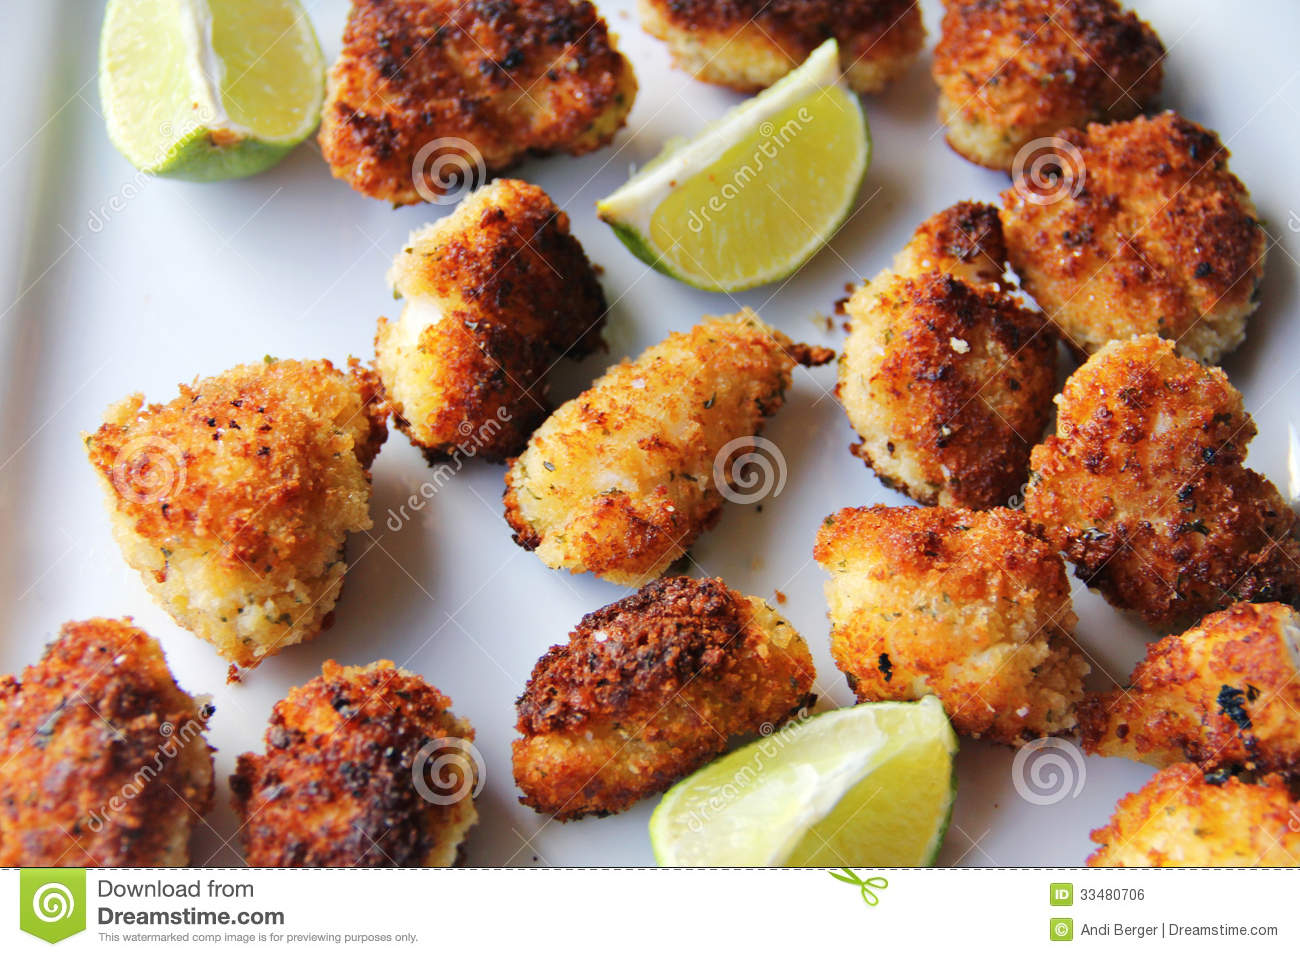 Panko Fried Lobster Tail Nuggets With Lime Upclose Royalty Free Stock ...